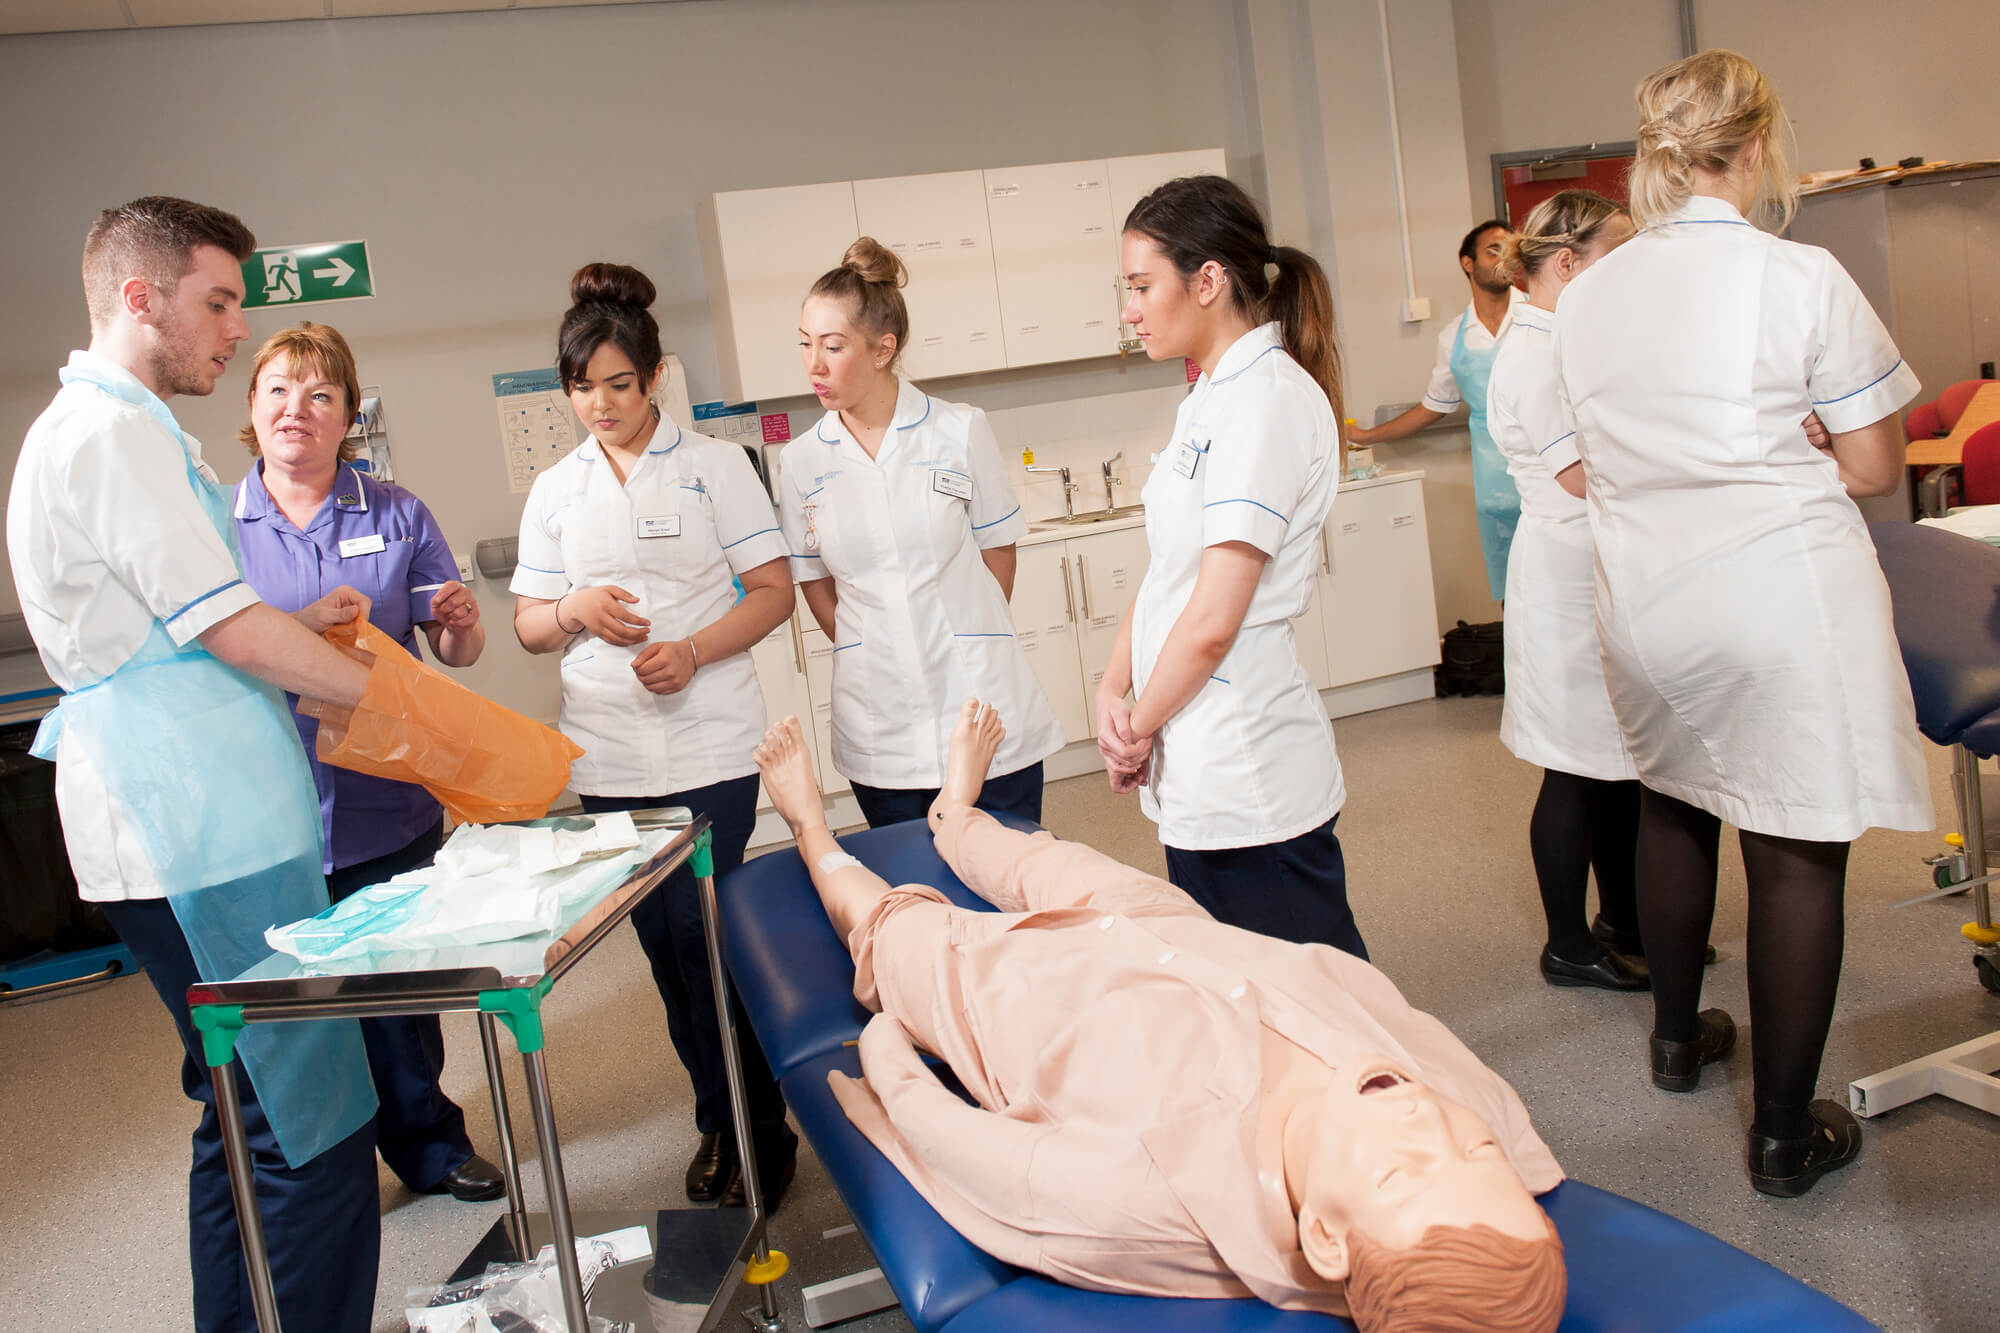 Artificial patients being used by nursing students